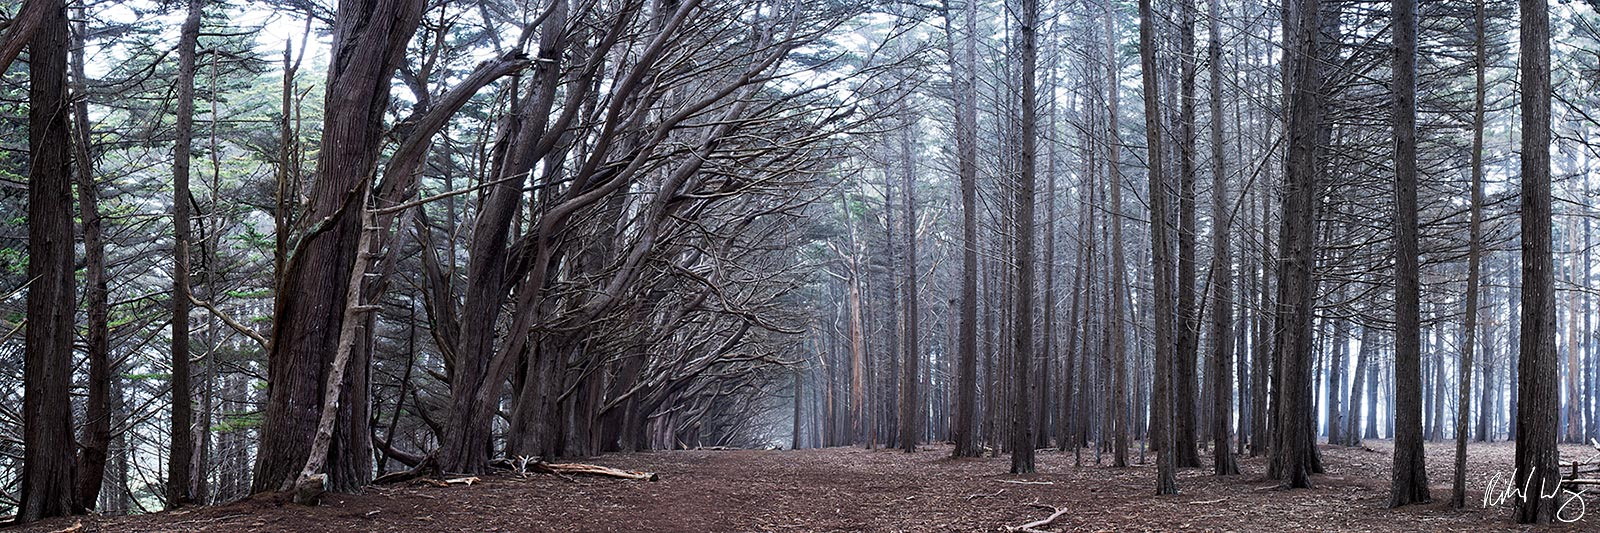 Monterey Cypress Tree Forest Panoramic Photo at James Fitzgerald Marine Reserve, Moss Beach, California Limited Edition of 10...